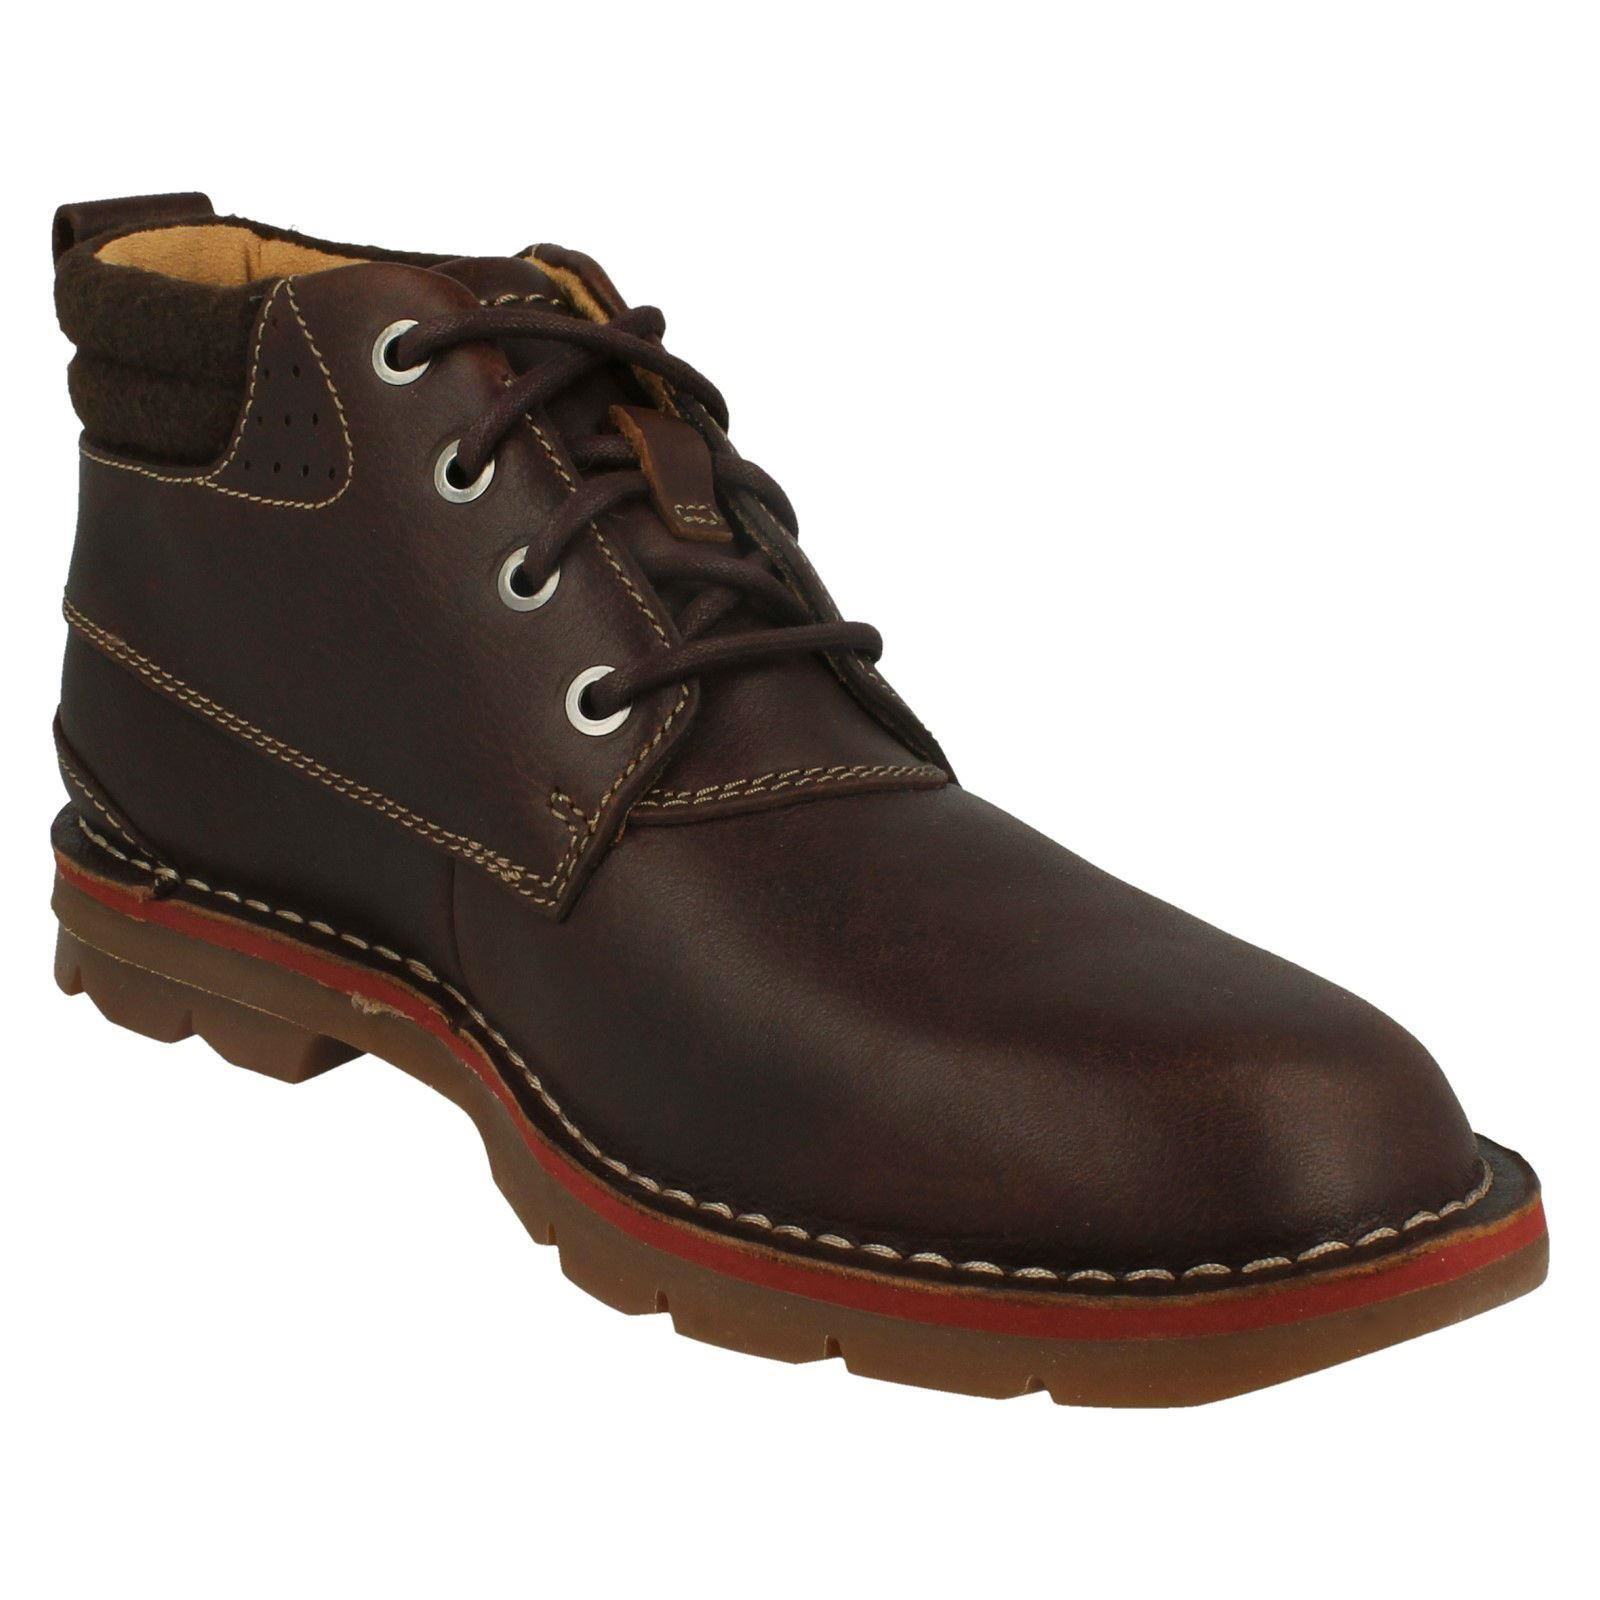 Mens-Clarks-Warm-Lined-Casual-Boots-039-Varick-Heal-039 thumbnail 4